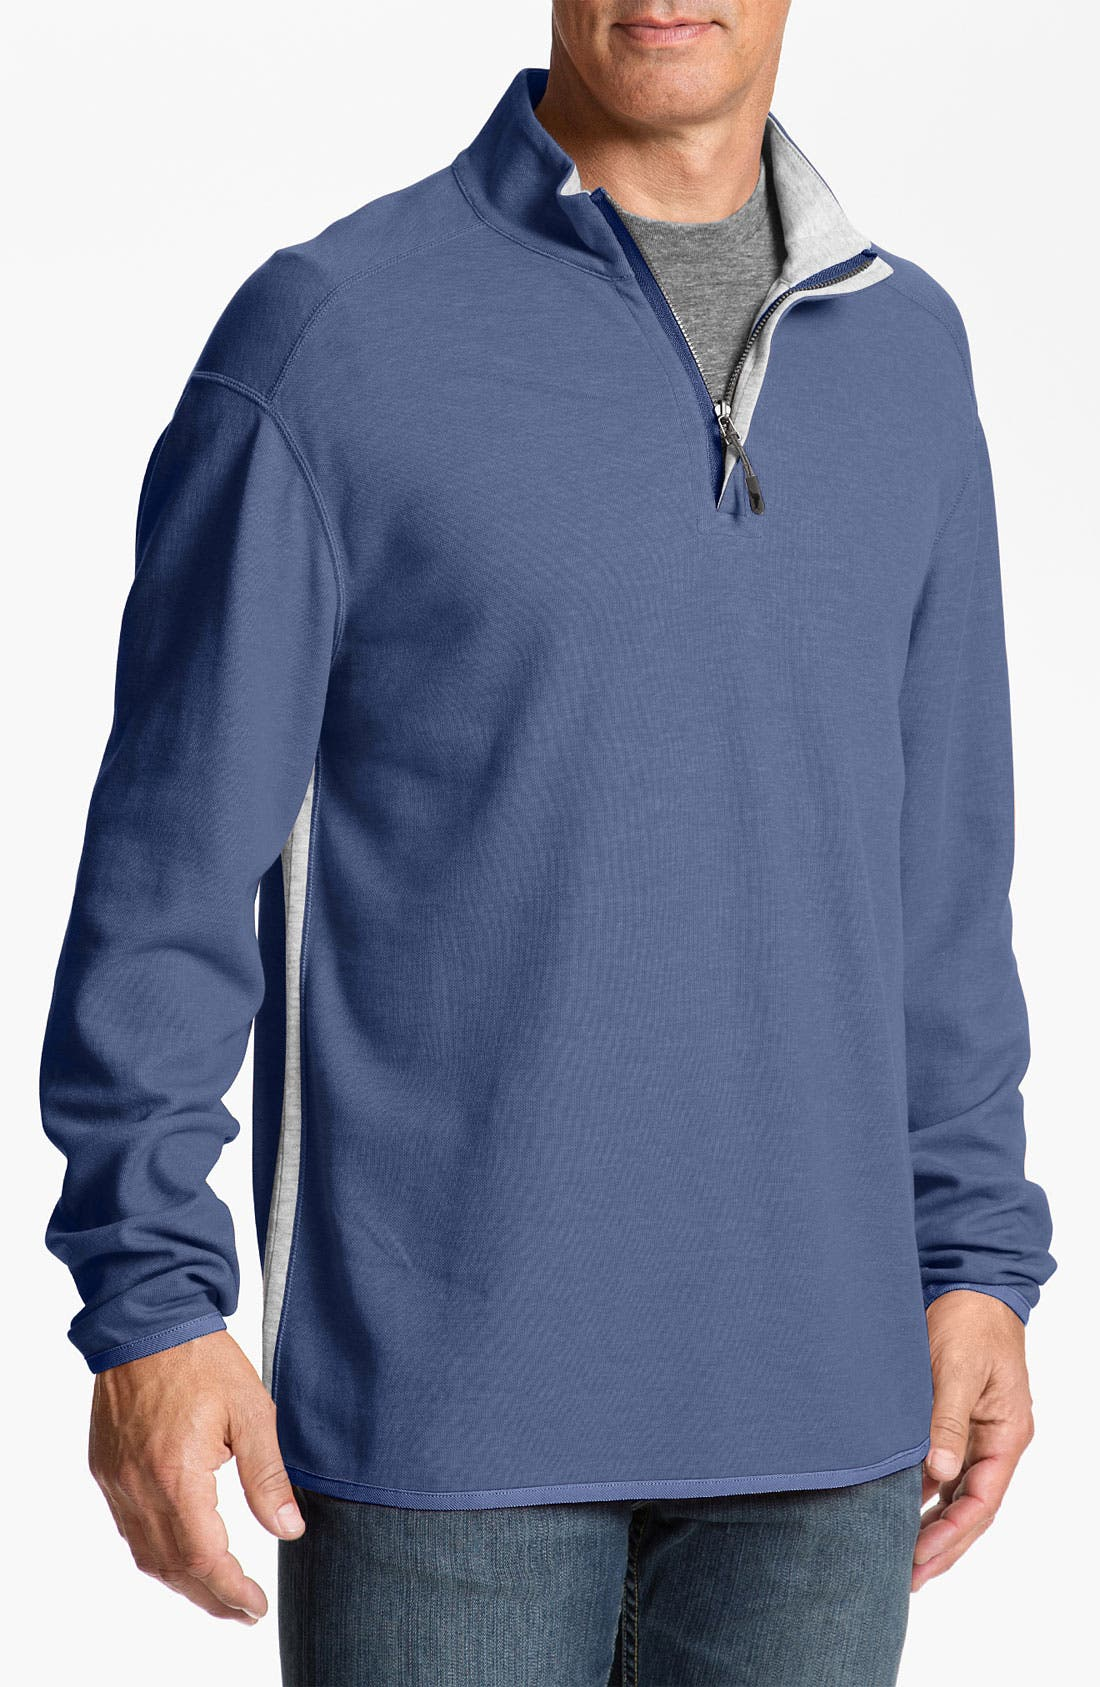 Main Image - Tommy Bahama 'Flip Out' Quarter Zip Pullover